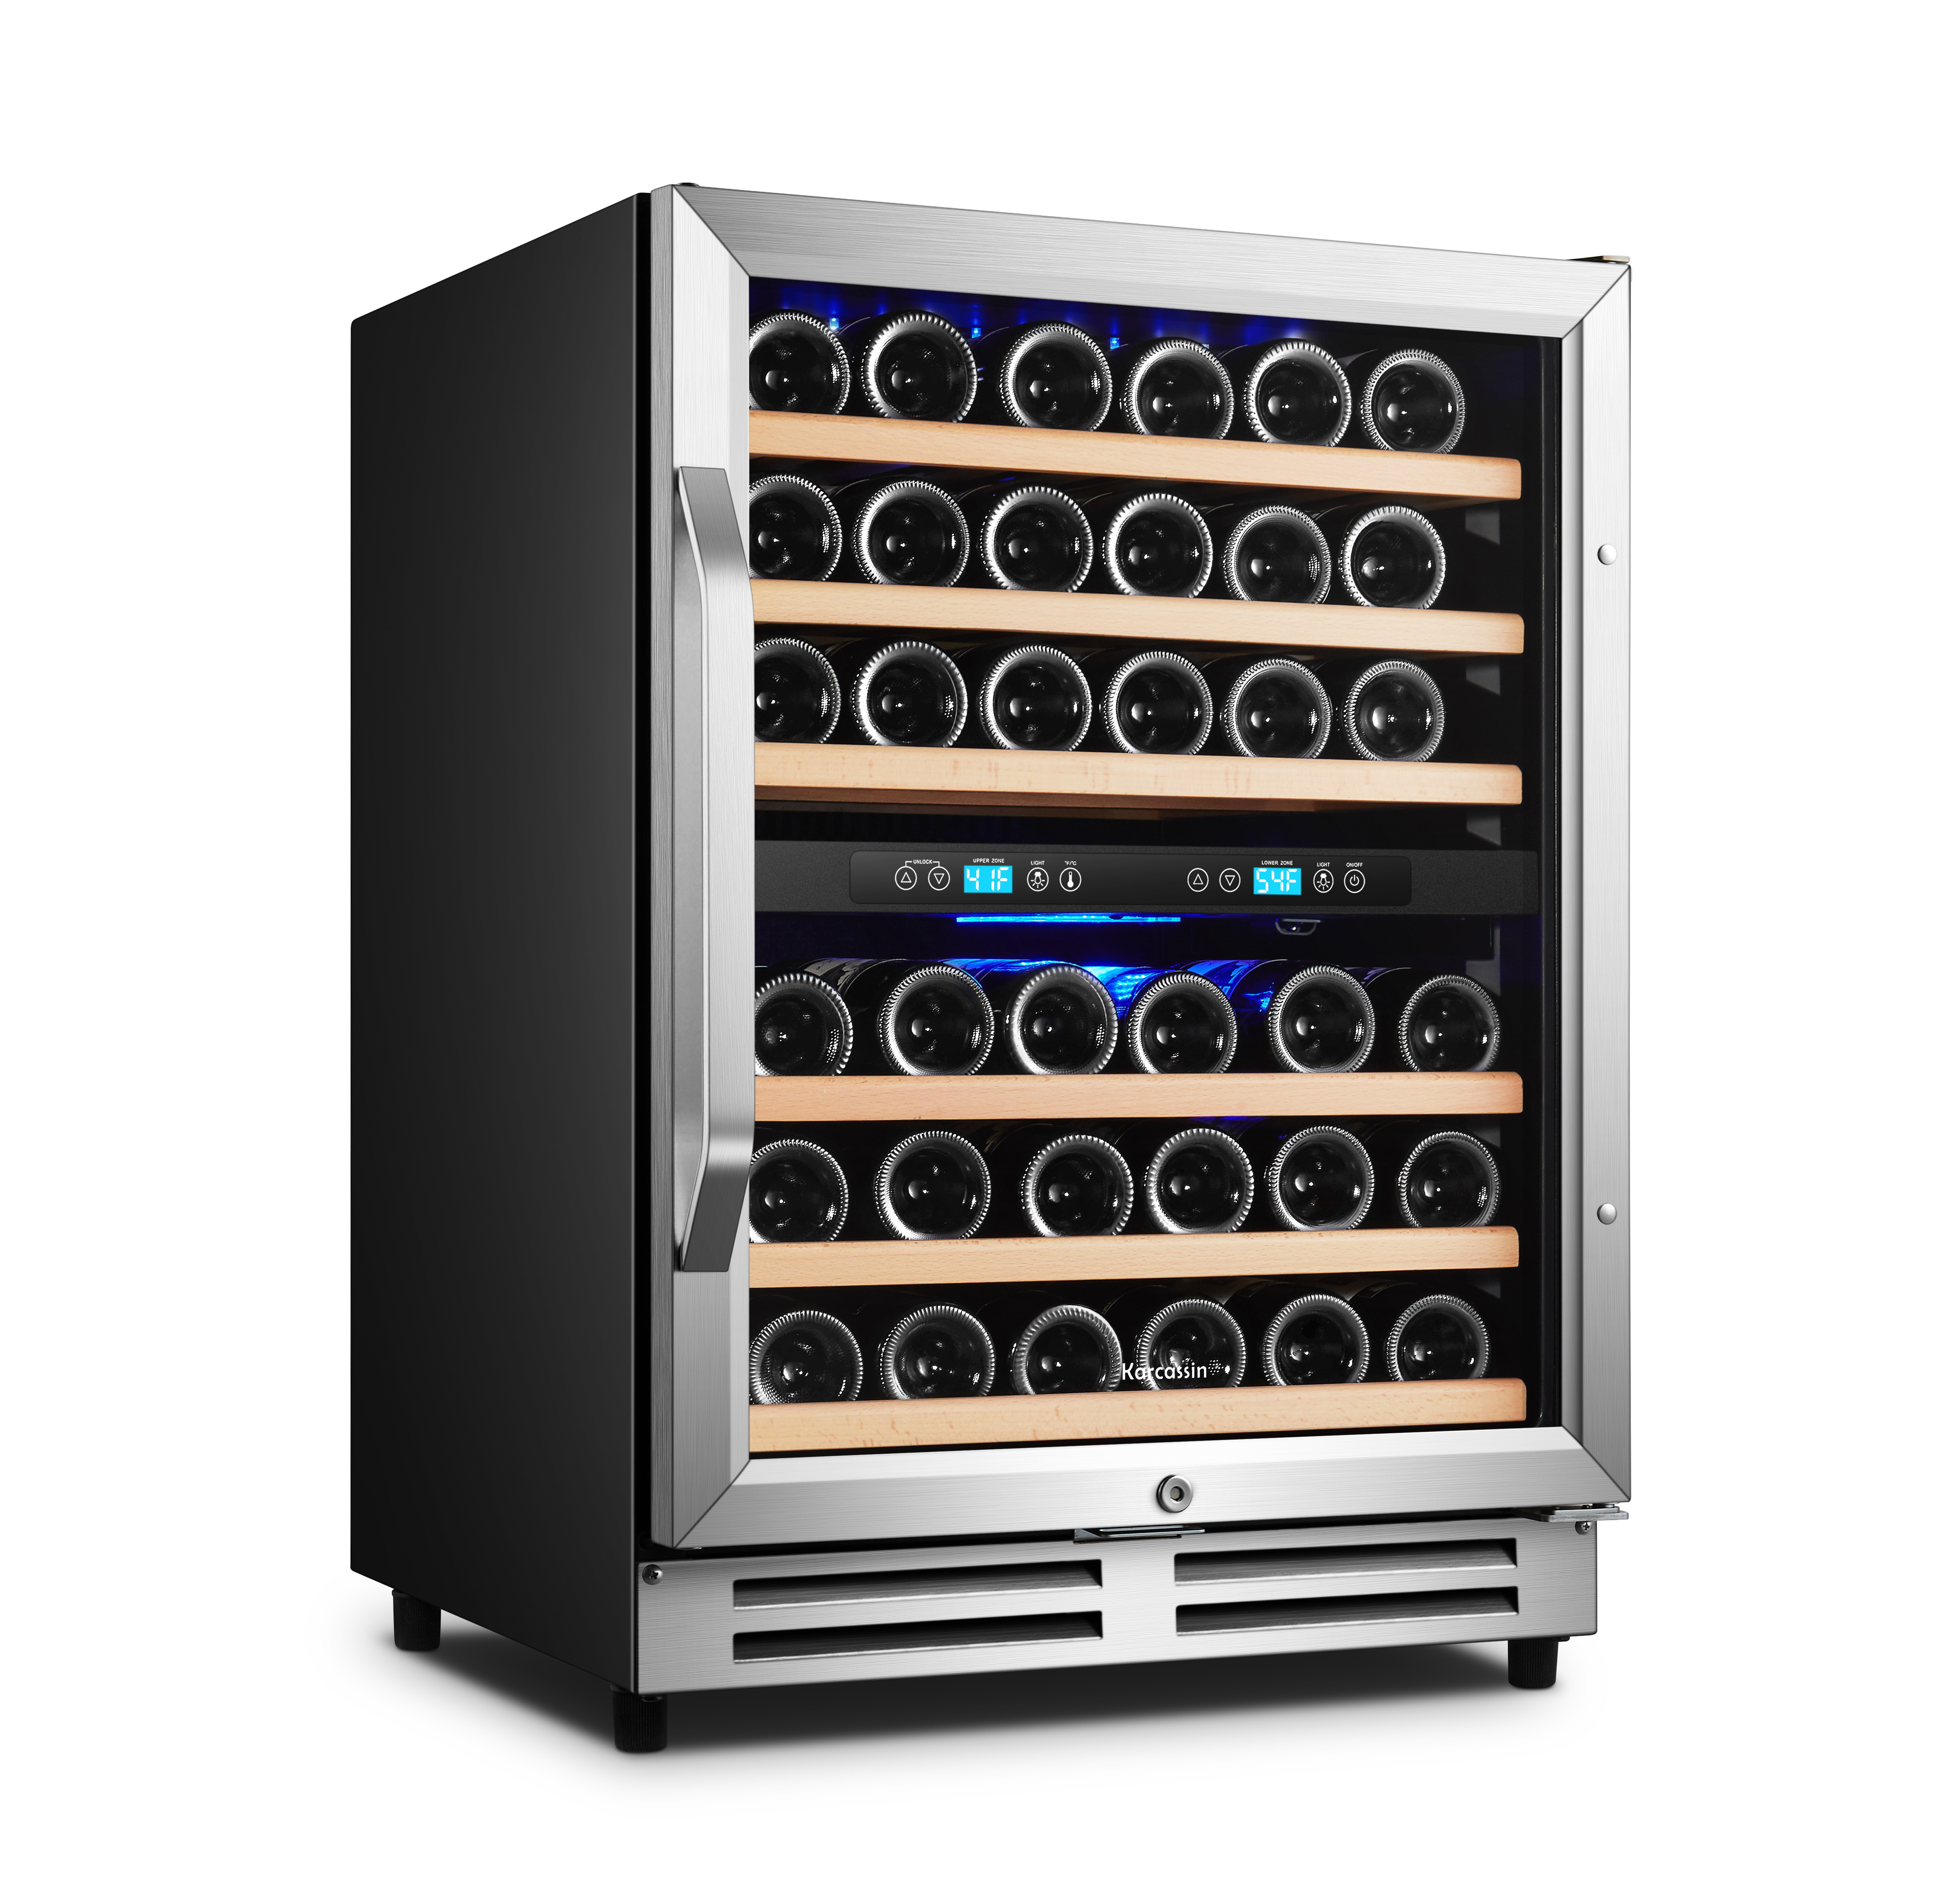 24 inch dual zone wine cooler